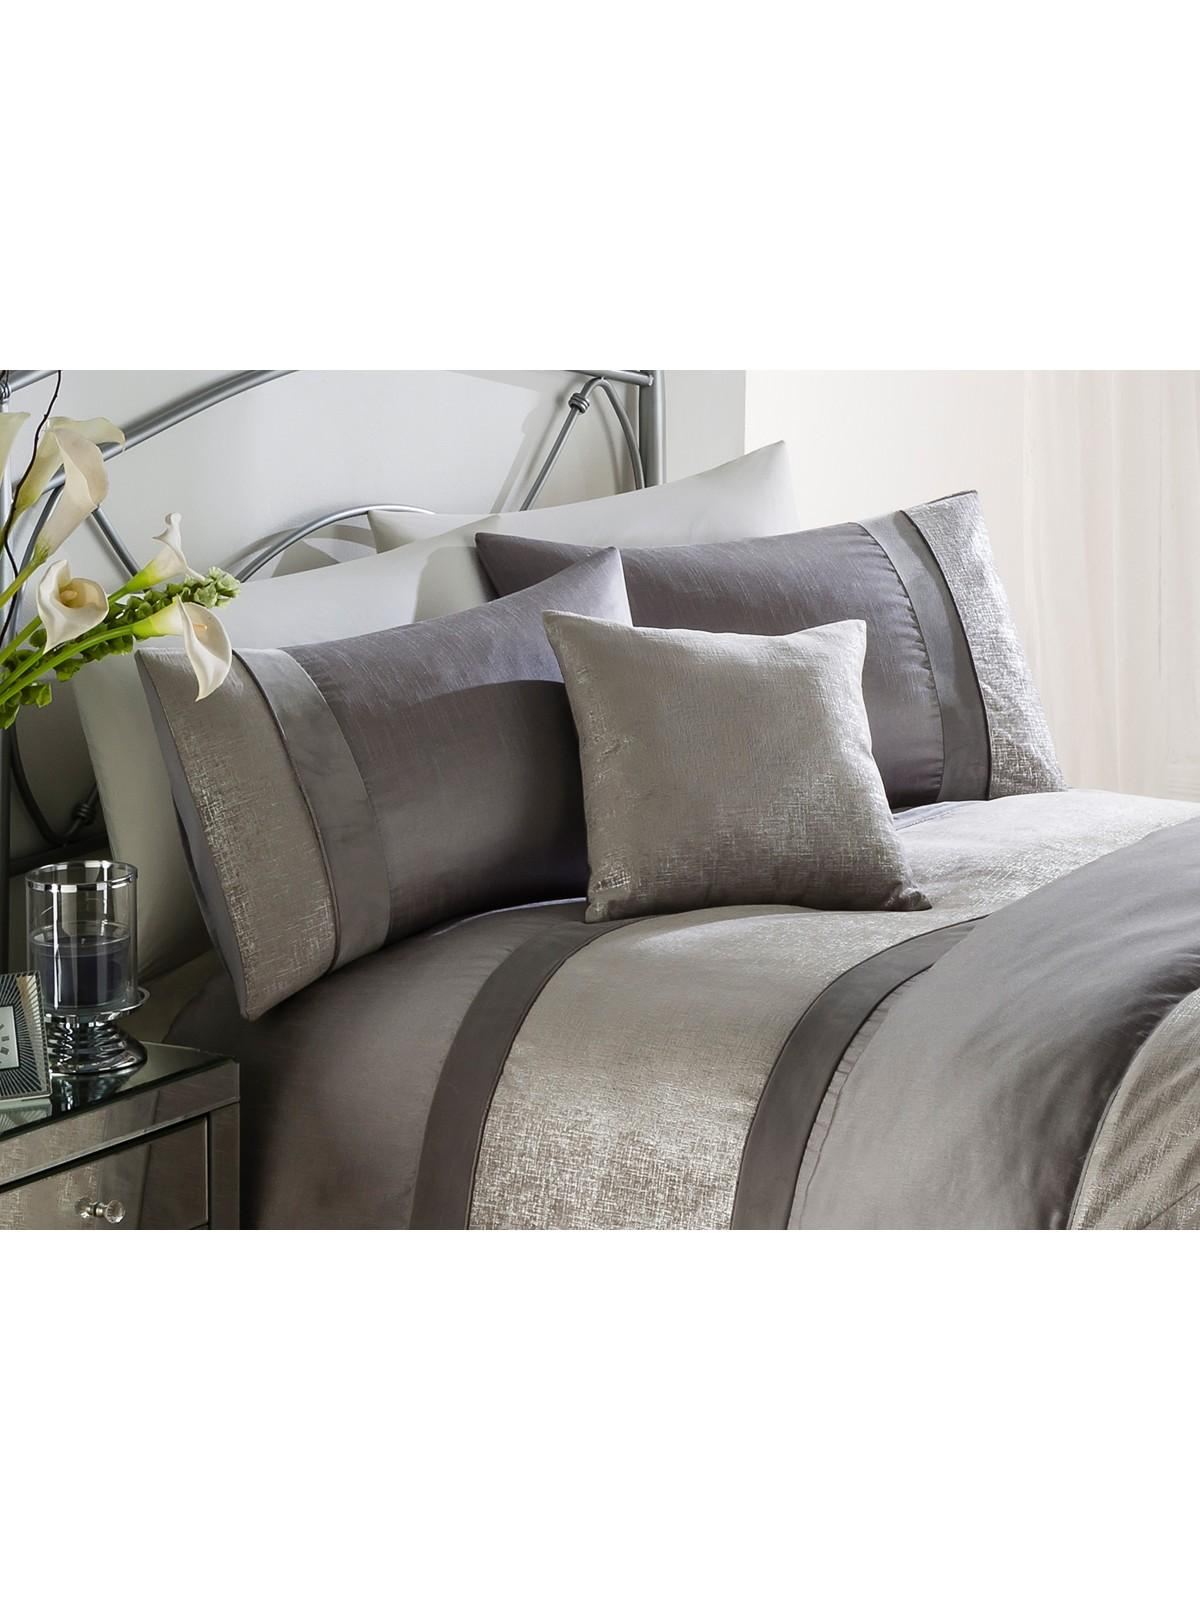 cover lavish chocolate taupe sets duvet and k piece striped home bedding p comforter metallic set king c